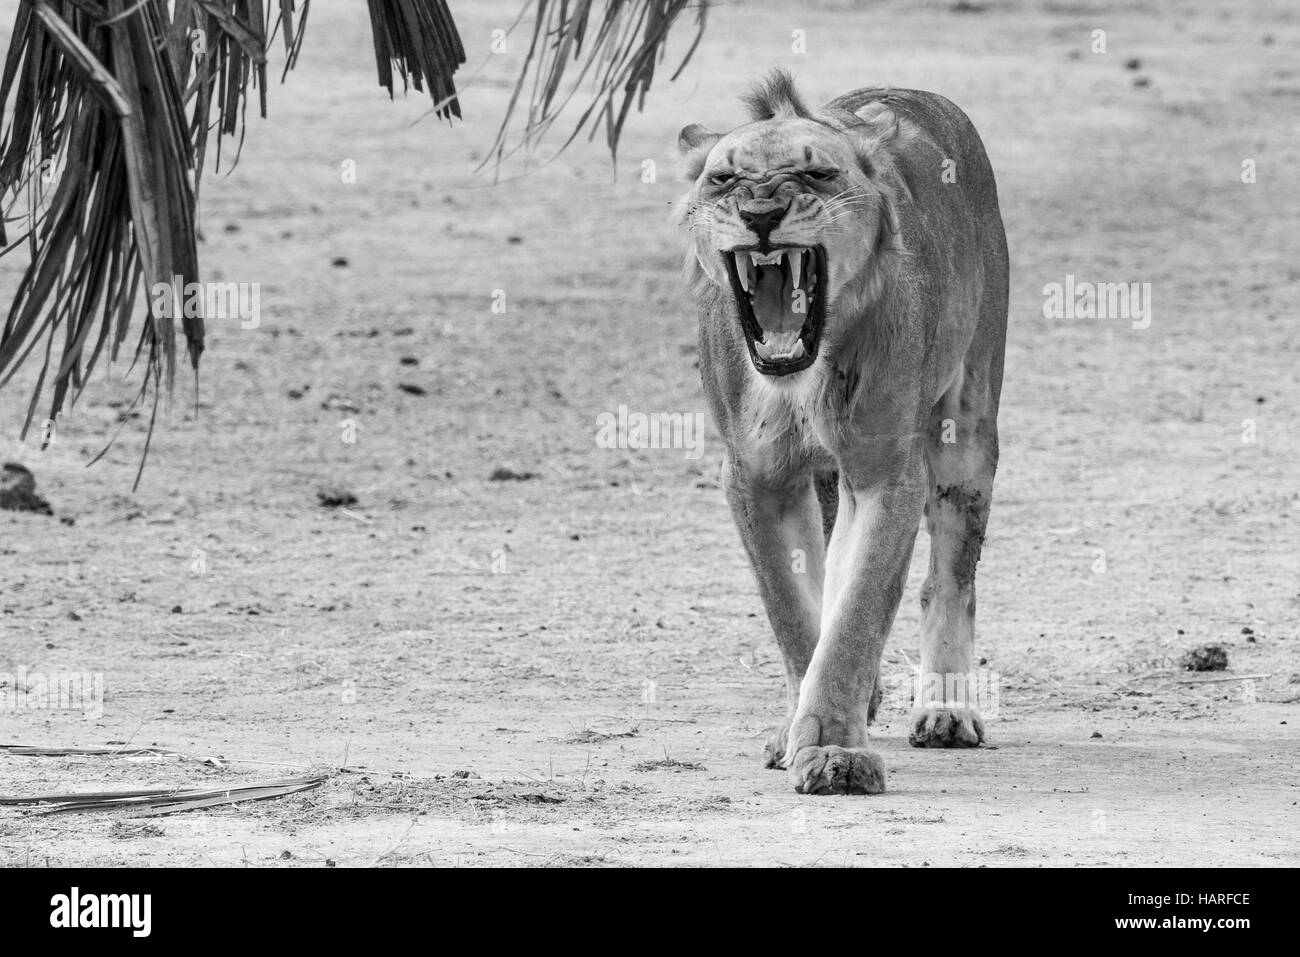 Lion,walking,snarling,roaring,Tanzania,Africa,The Selous - Stock Image